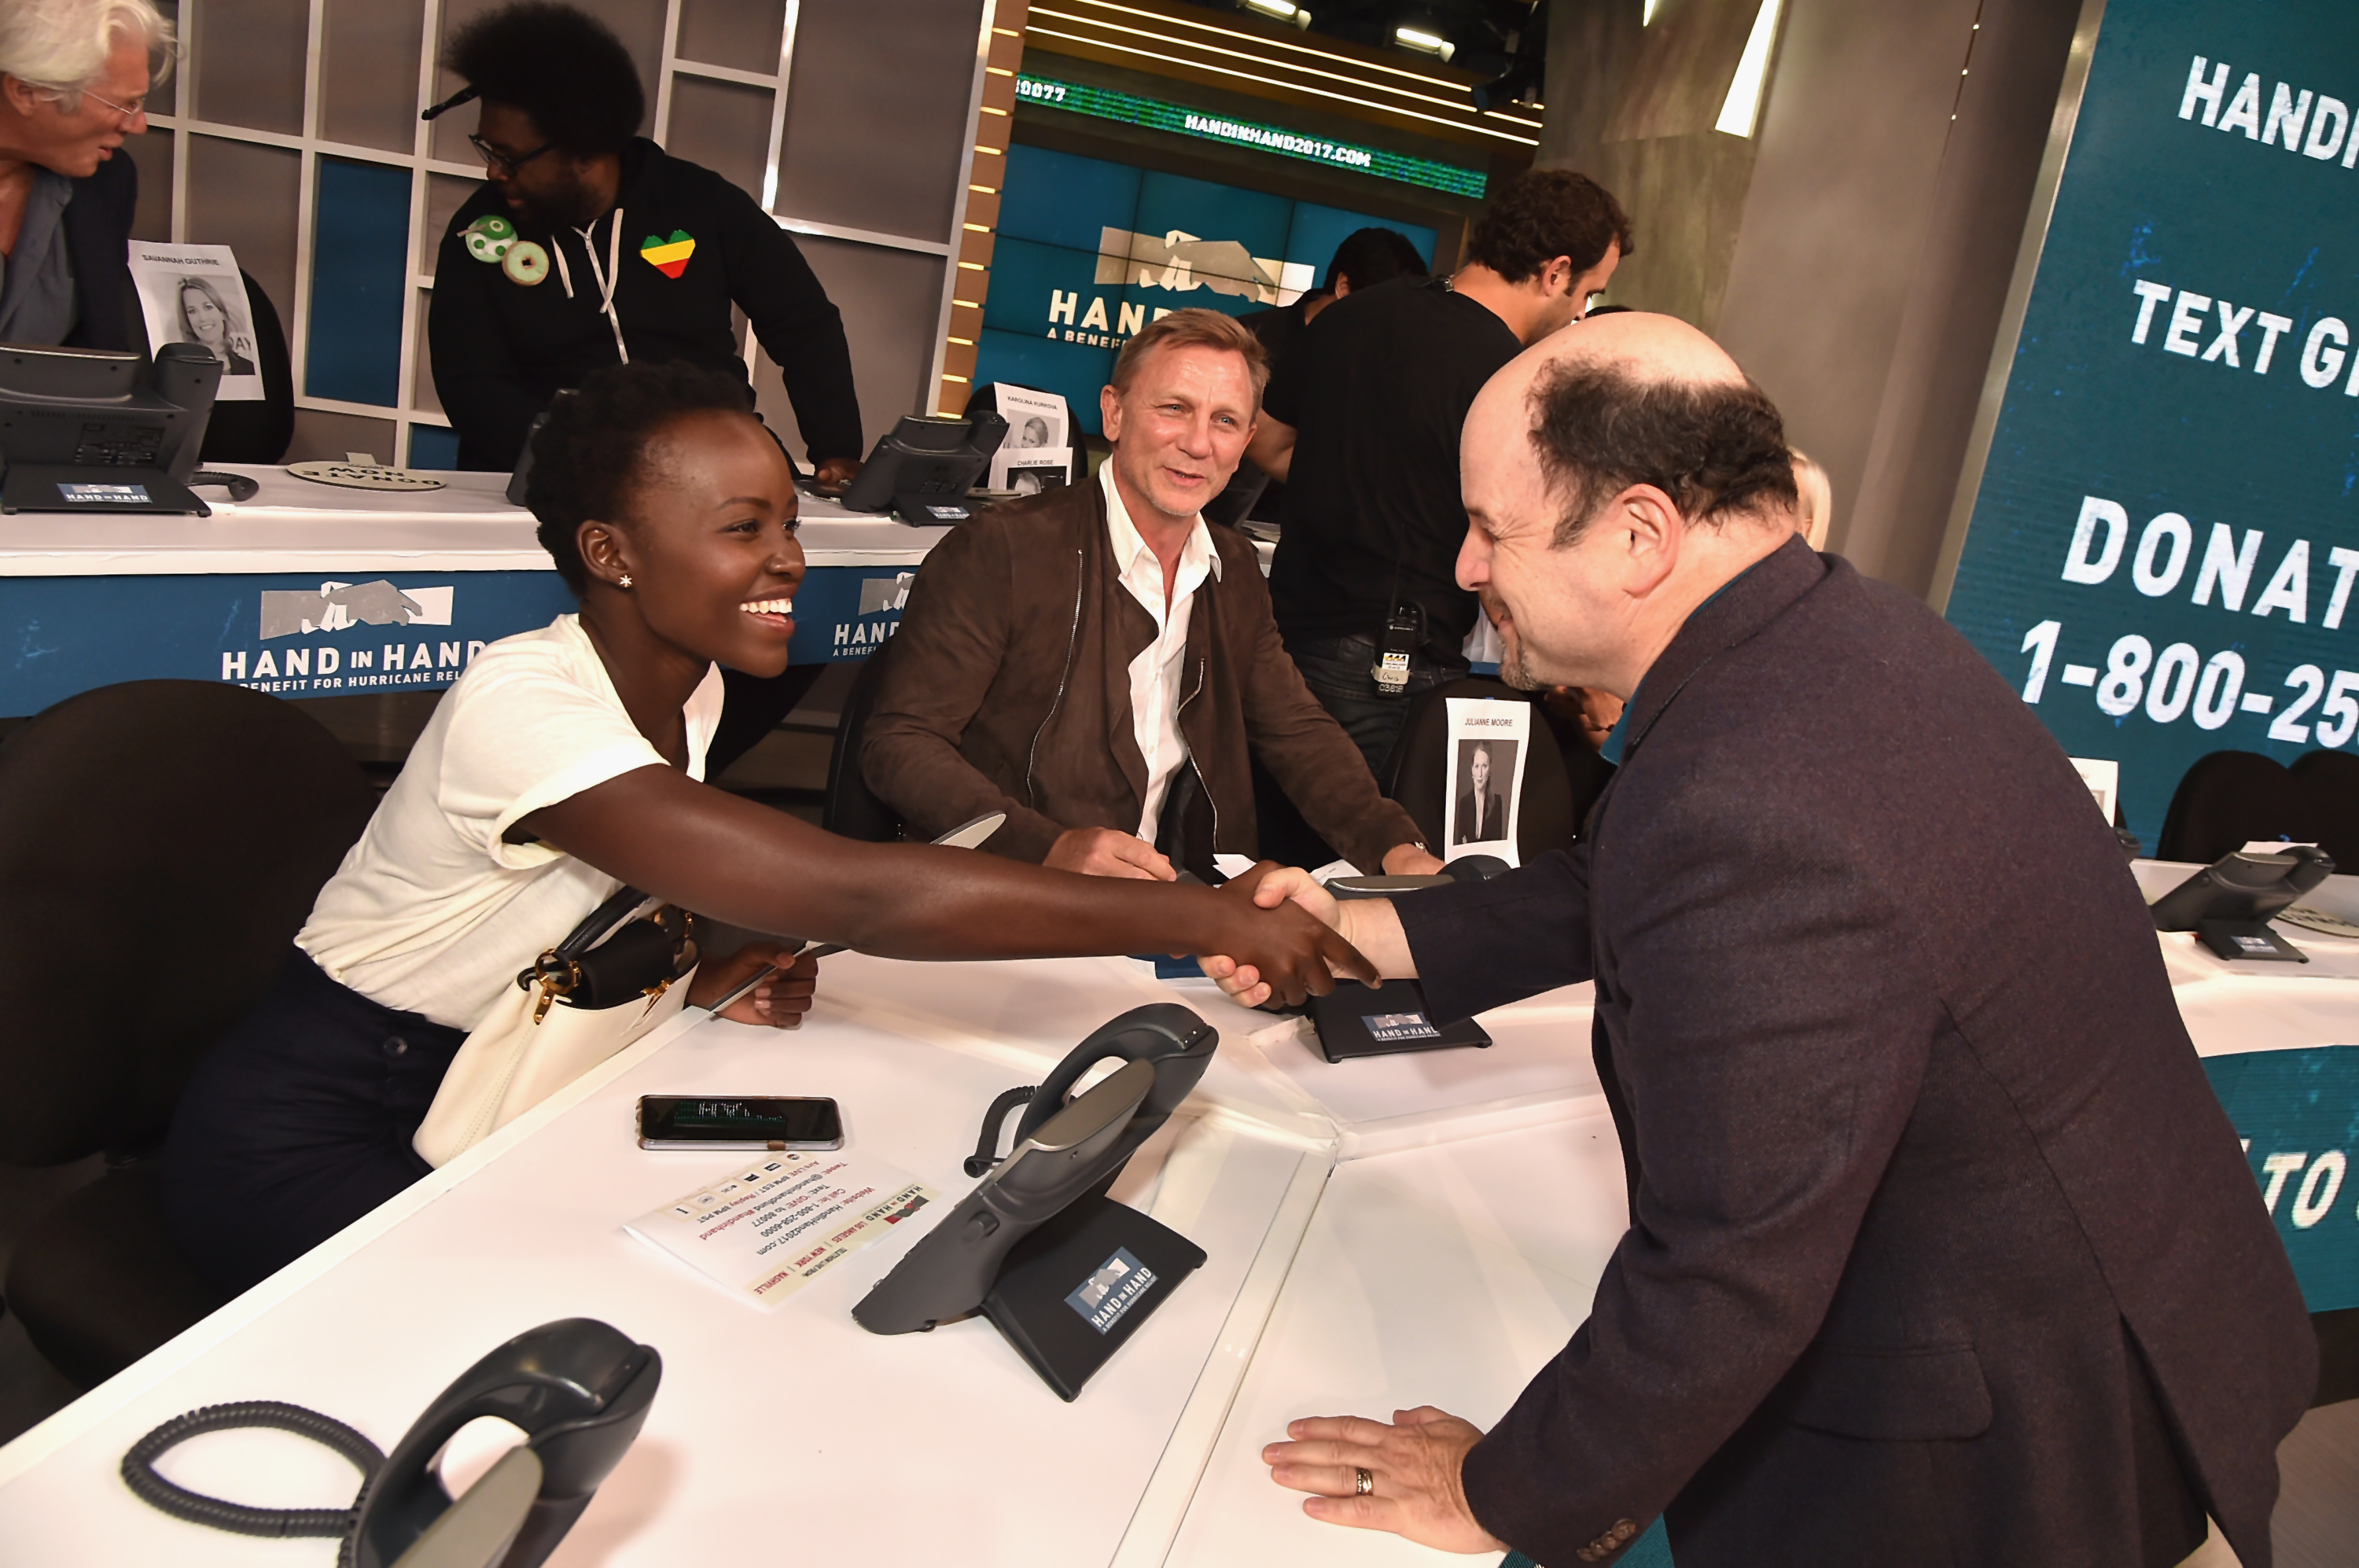 """<div class=""""meta image-caption""""><div class=""""origin-logo origin-image none""""><span>none</span></div><span class=""""caption-text"""">Lupita Nyong'o, Daniel Craig and Jason Alexander  attend the Hand in Hand benefit at ABC News' Good Morning America Times Square Studio on Sept. 12 in New York City. (Theo Wargo/Hand in Hand/Getty Images)</span></div>"""